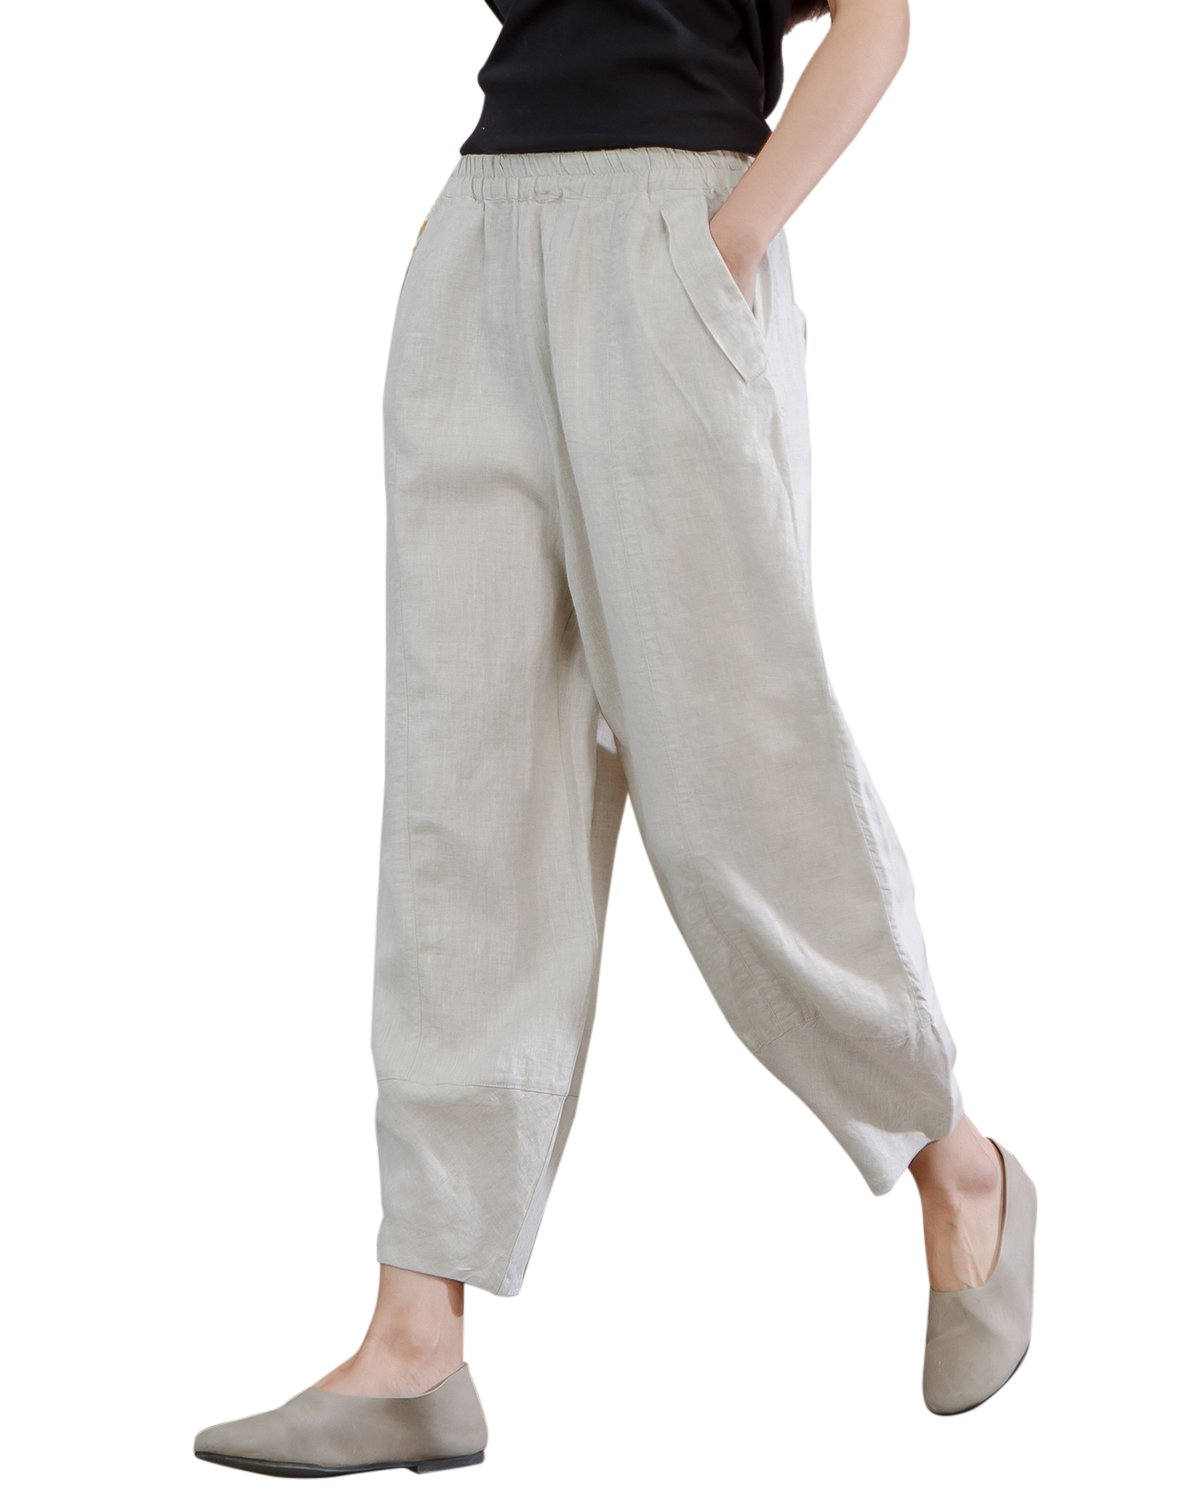 IXIMO Women's Linen Pants Lantern Tapered Elastic Cropped Pants Trousers with Pockets Hemp L